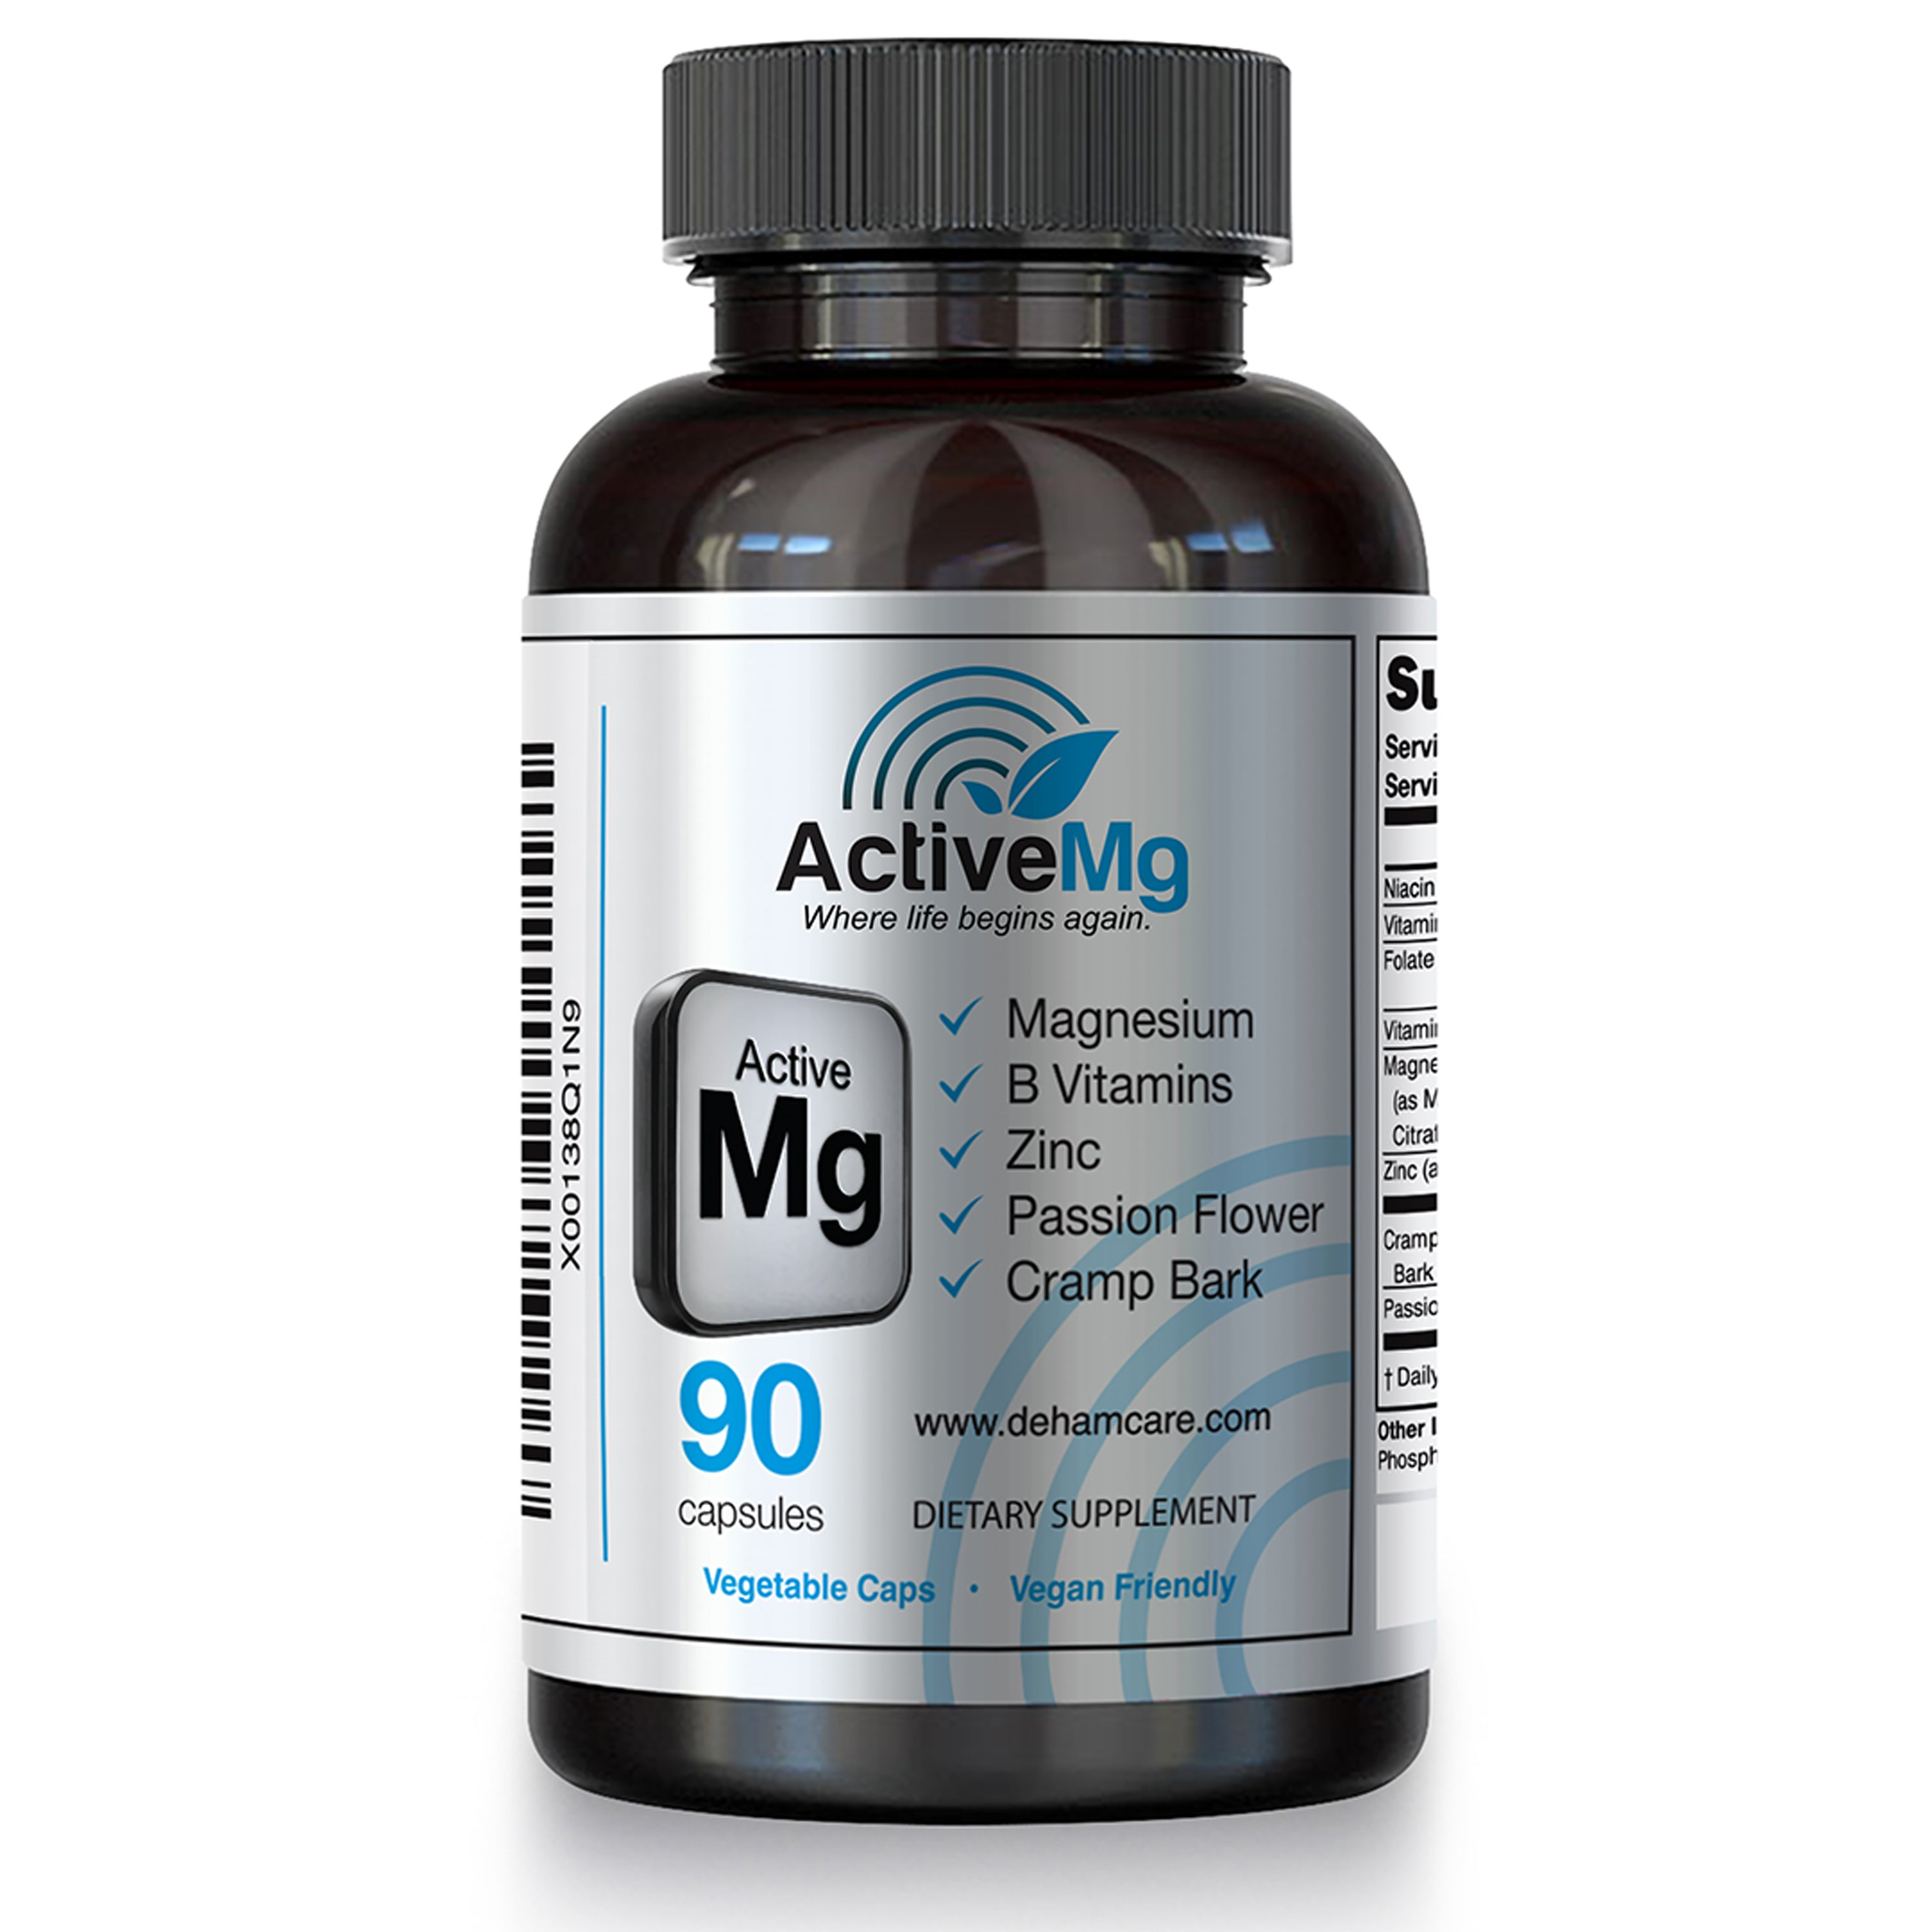 Active Mg - Magnesium Supplement